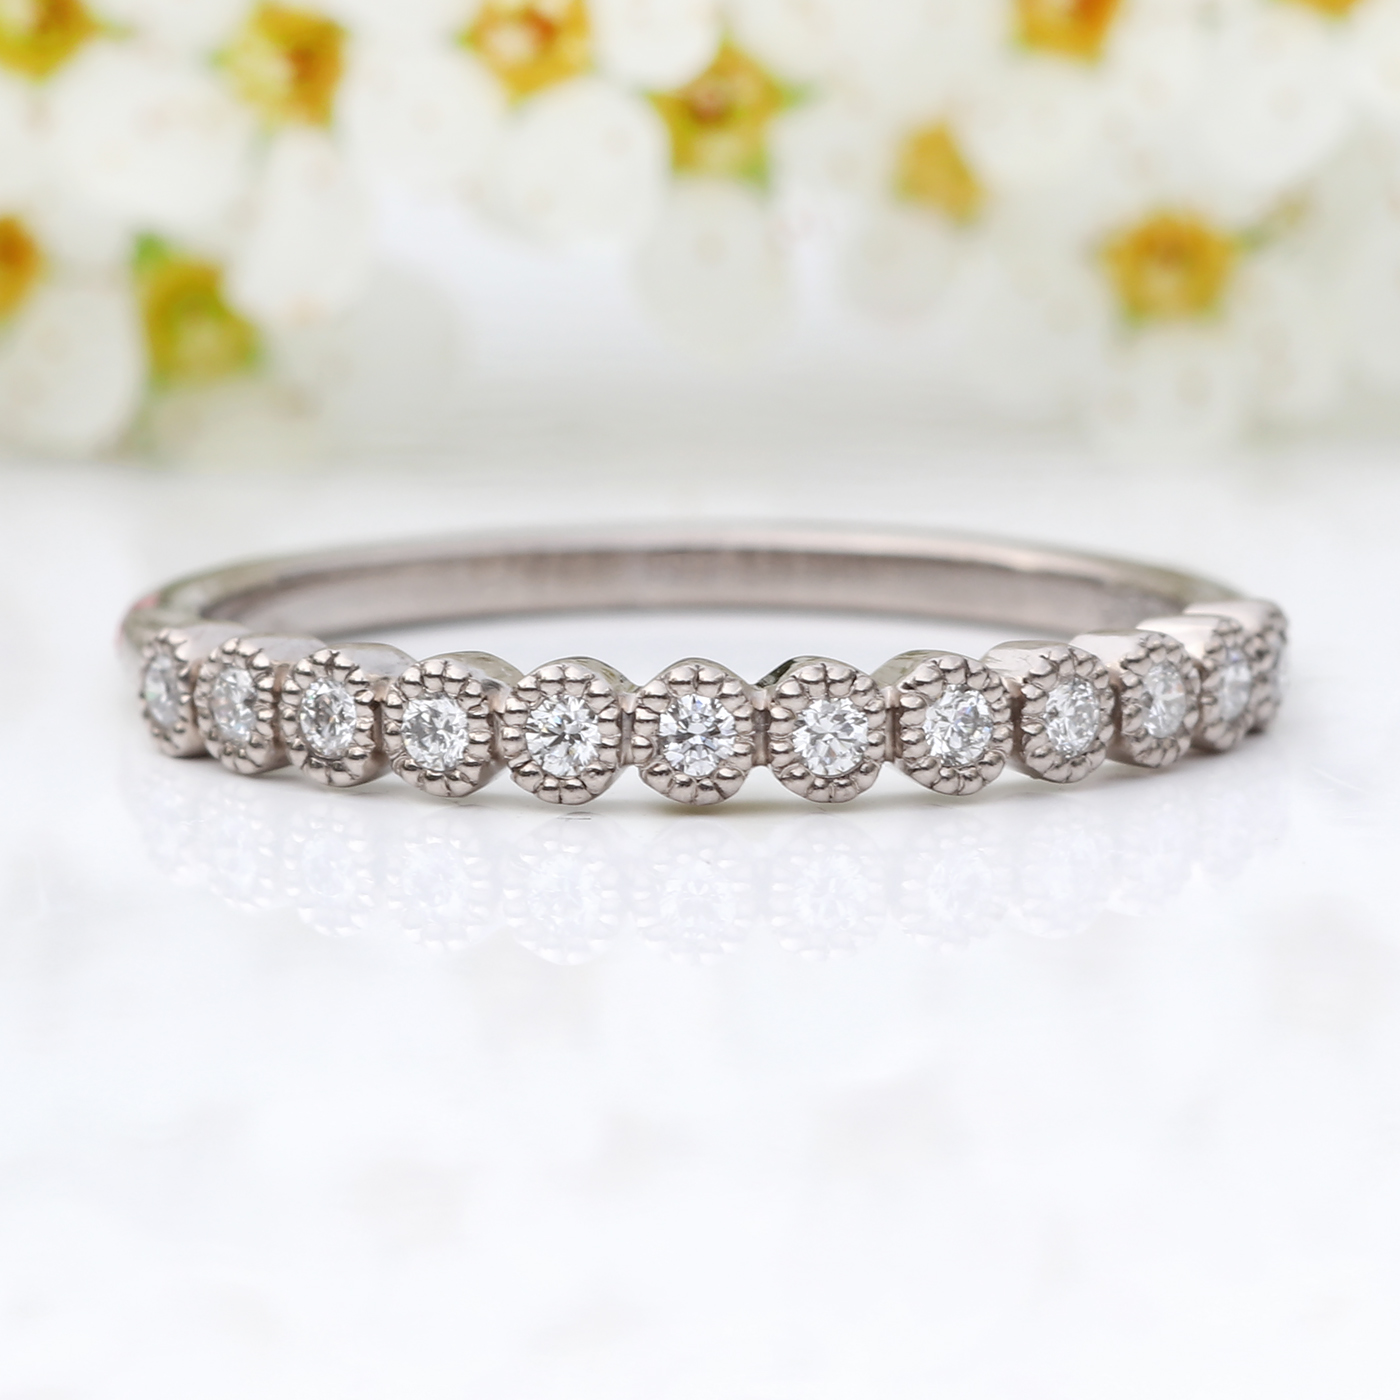 d59bb3344fdf0 18ct Gold or Platinum Ethical Diamond Eternity Ring